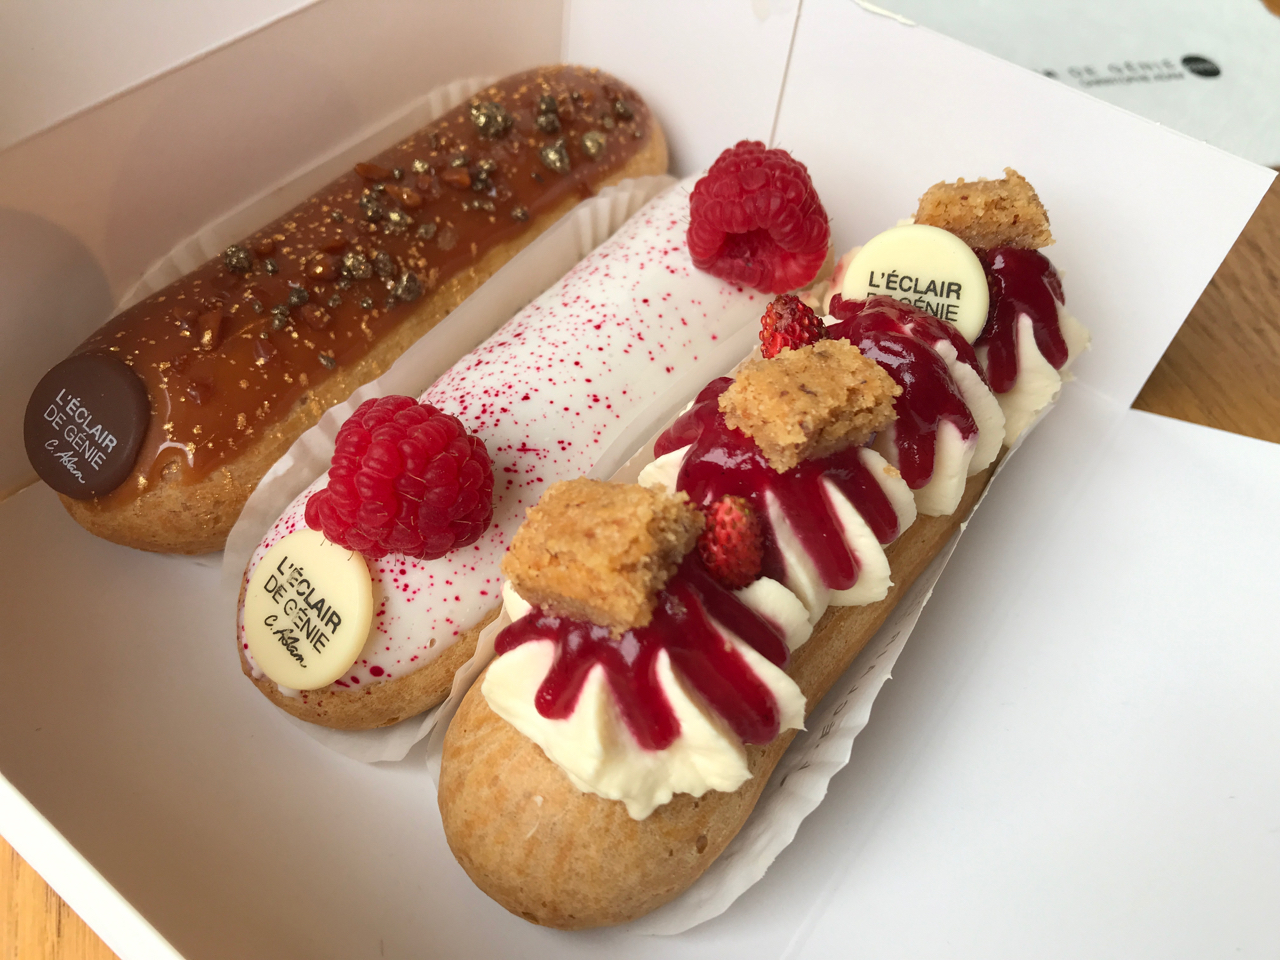 From left to right there are three delicious éclairs: salted caramel (caramel au buerre sale), rose lychee and raspberry mascarpone (rose, litchi et framboise mascarpone) and a wild strawberry éclair (fraises des bois). The three beautiful éclairs are sitting in a box from the La Fabrique location of L'Éclair de Génie's pastry shop in Paris, France. Photo Courtesy of FoodWaterShoes